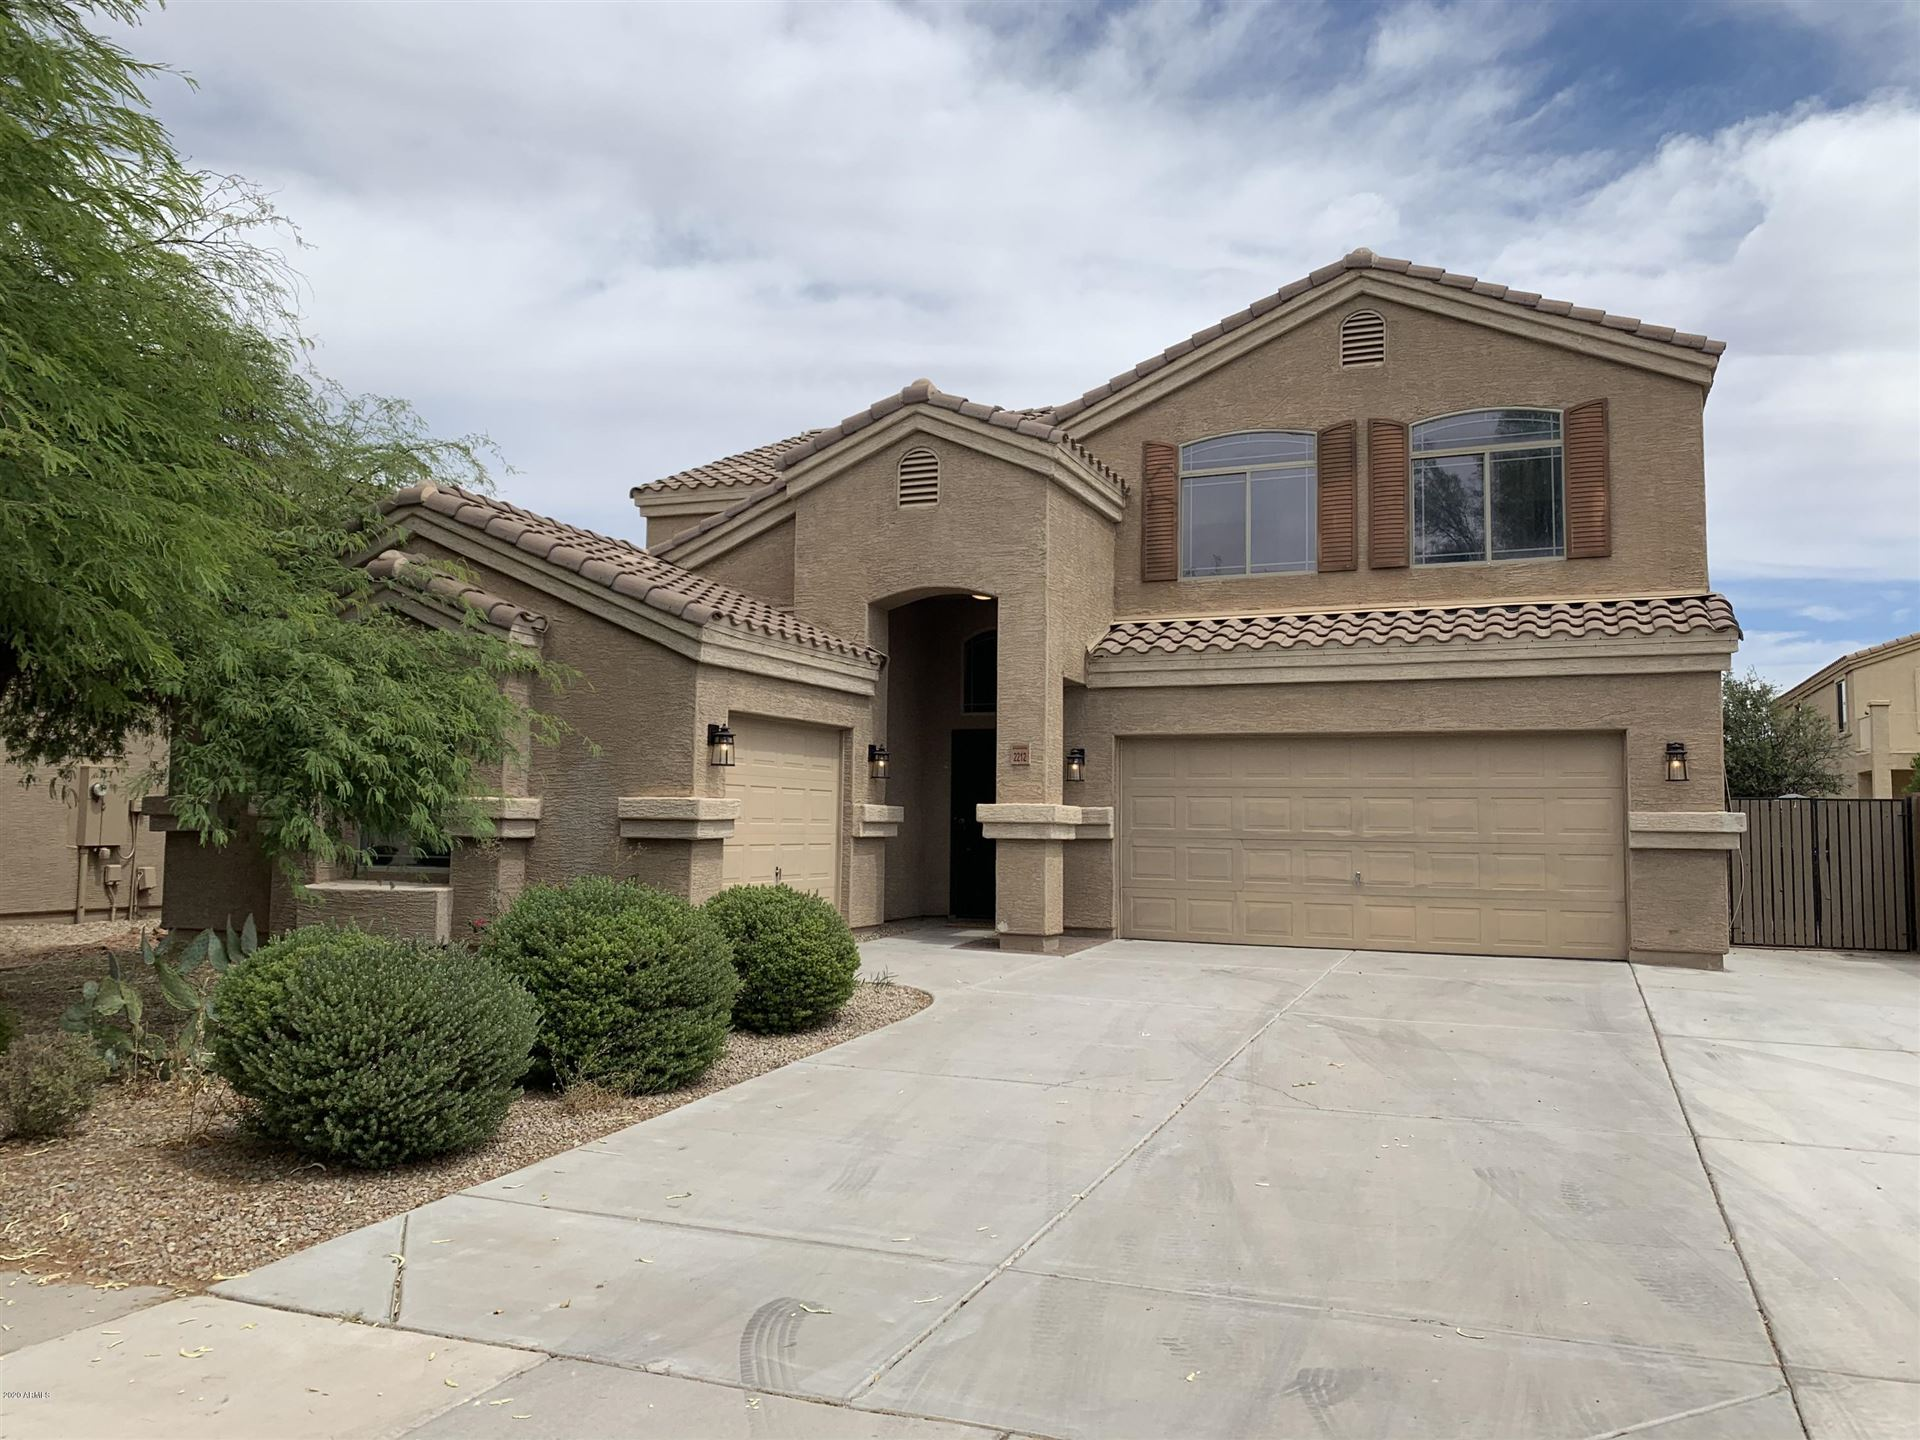 2212 W CONGRESS Avenue, Coolidge, AZ 85128 - #: 6096802